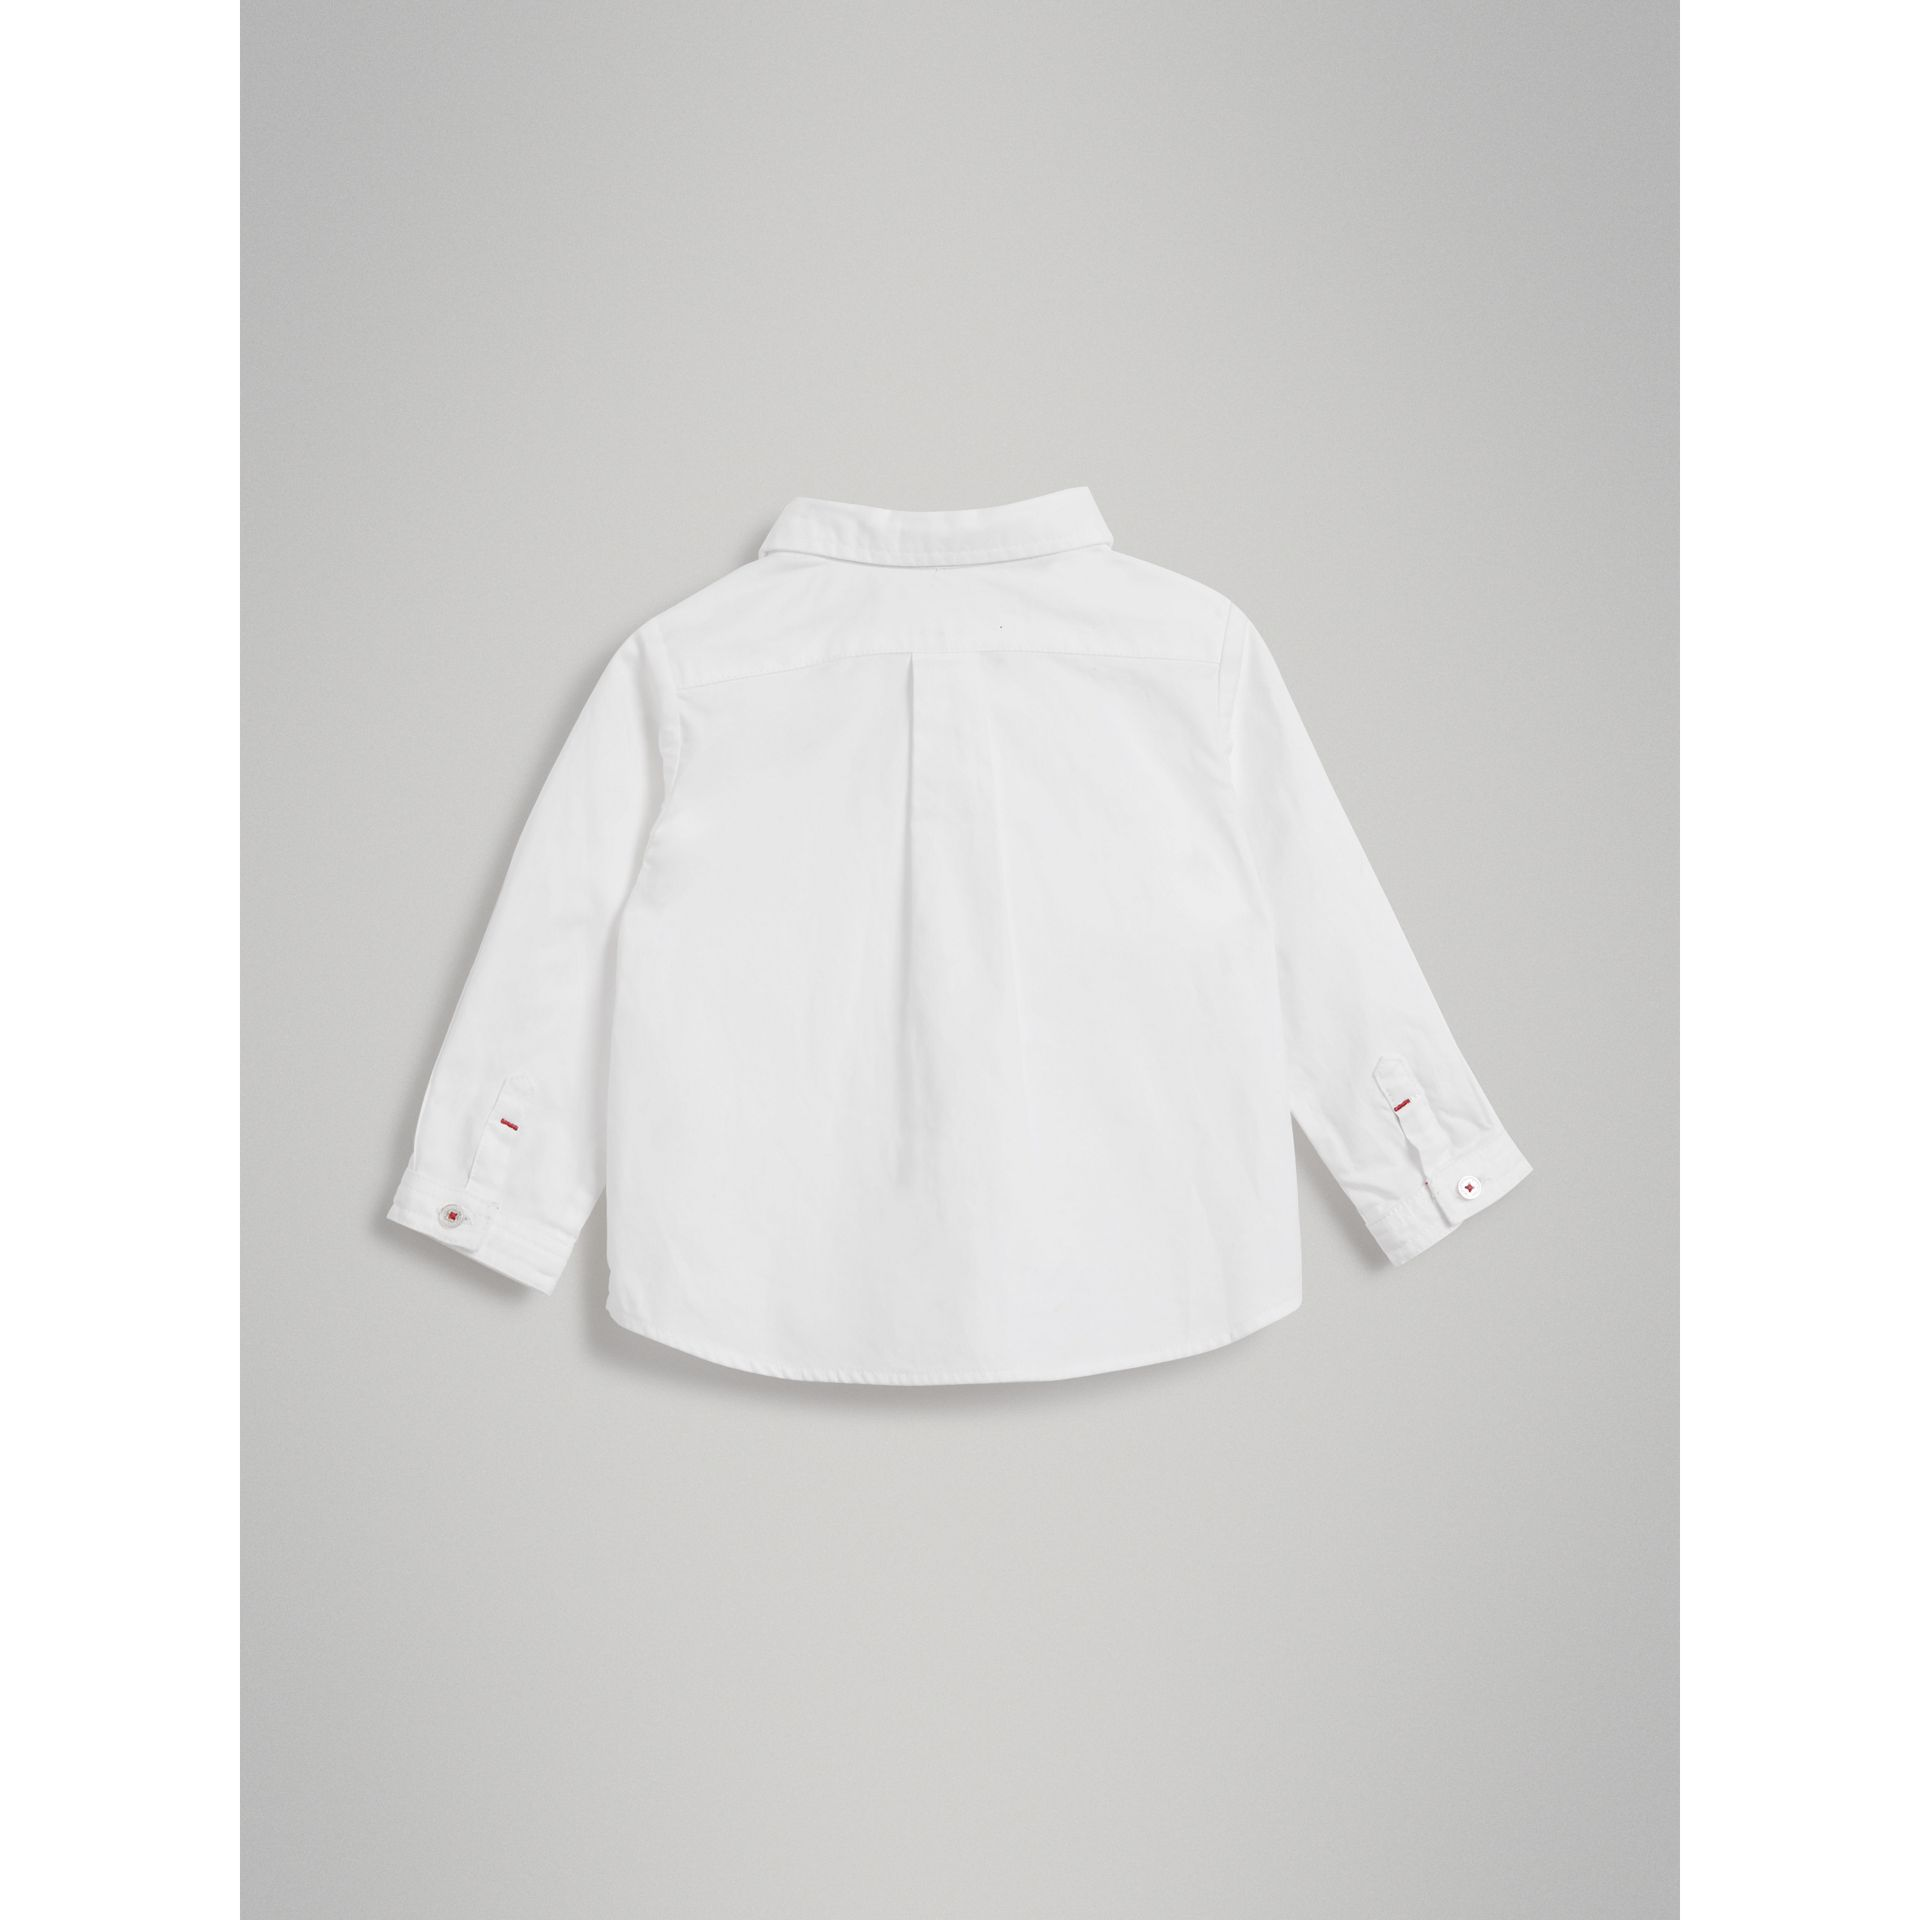 Cotton Oxford Shirt in White | Burberry Australia - gallery image 3